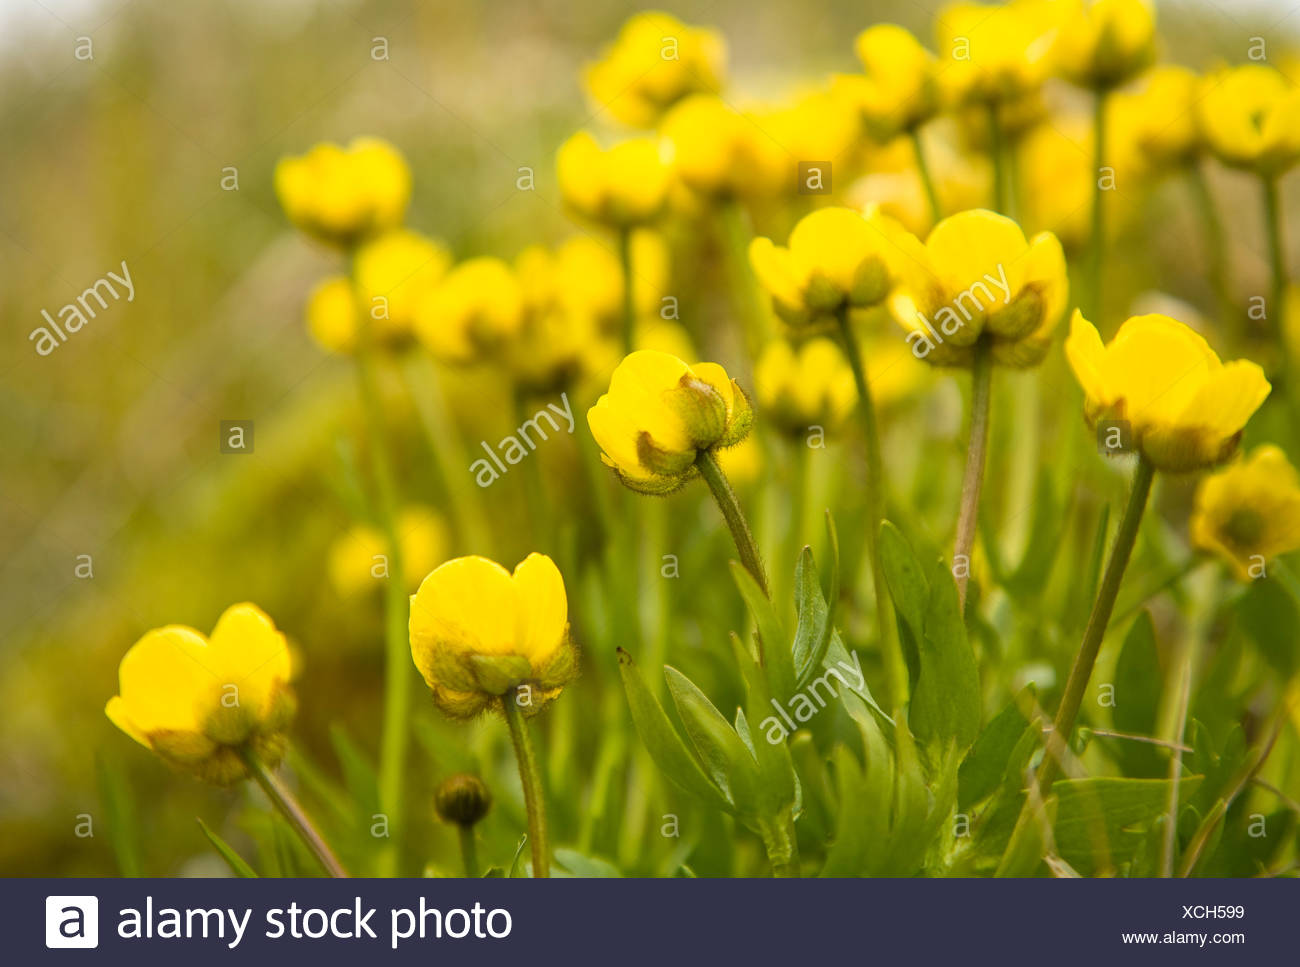 Tundra Buttercup Stock Photos Tundra Buttercup Stock Images Alamy